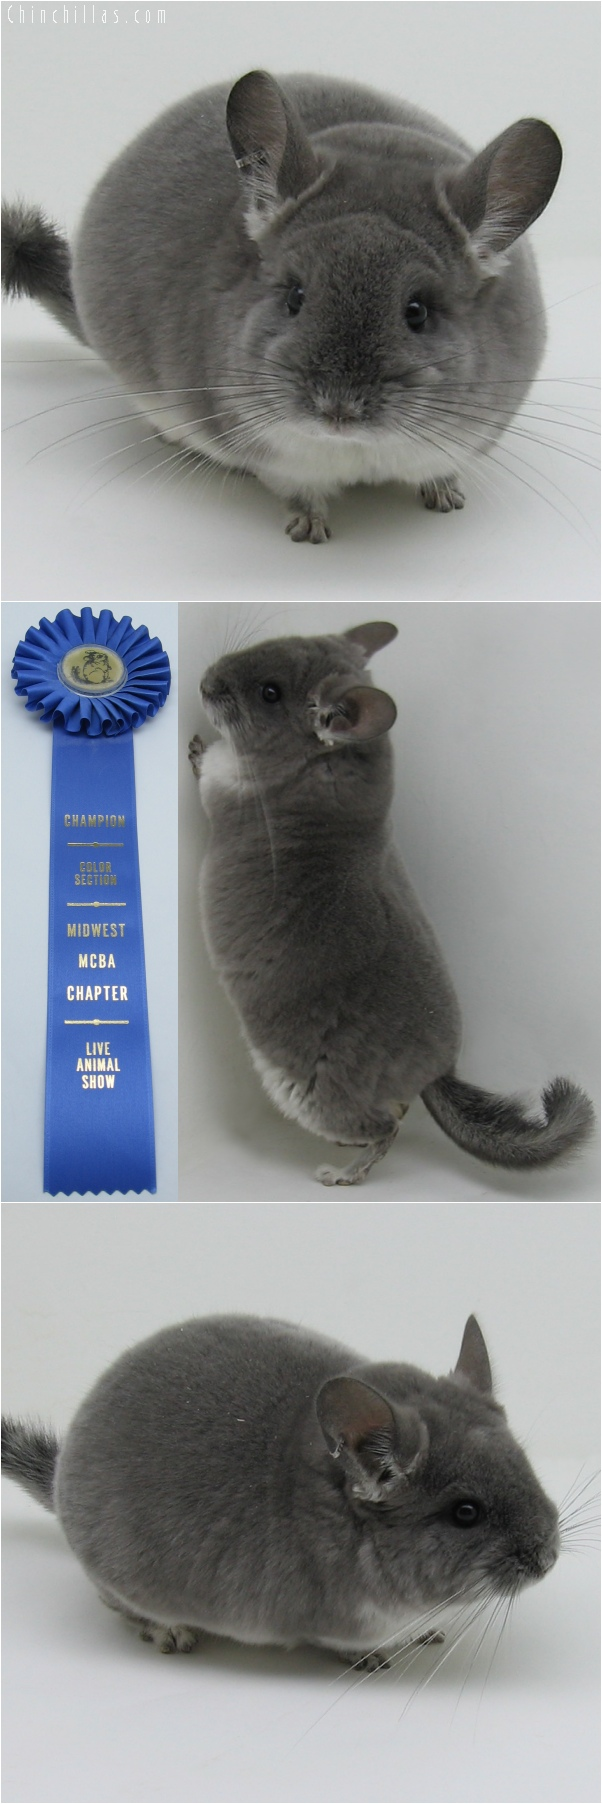 6052 Section Champion Violet Male Chinchilla